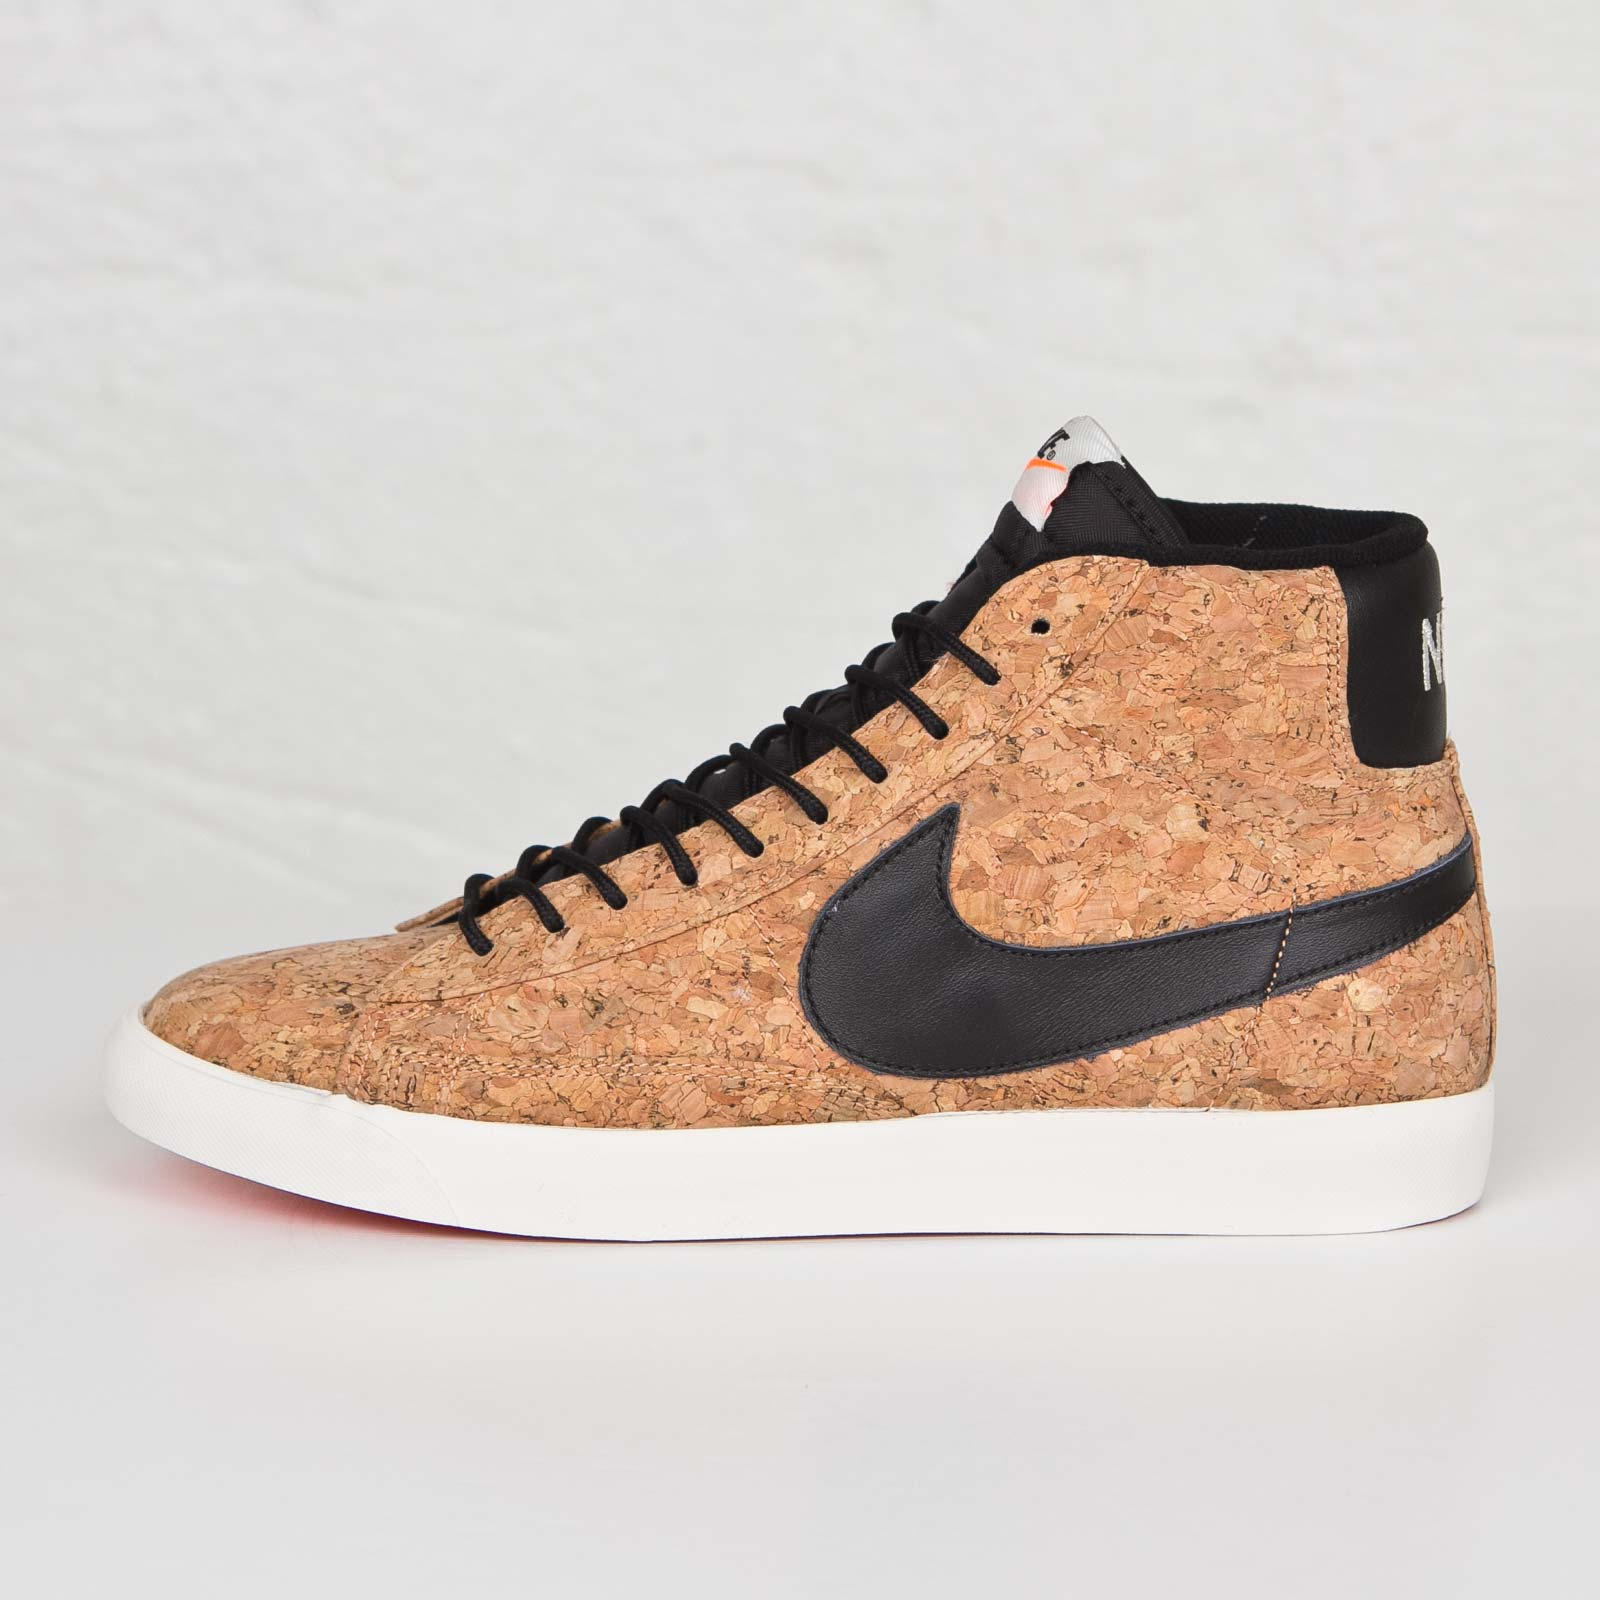 big sale 29847 94b29 ... Nike Blazer Mid Cork ...